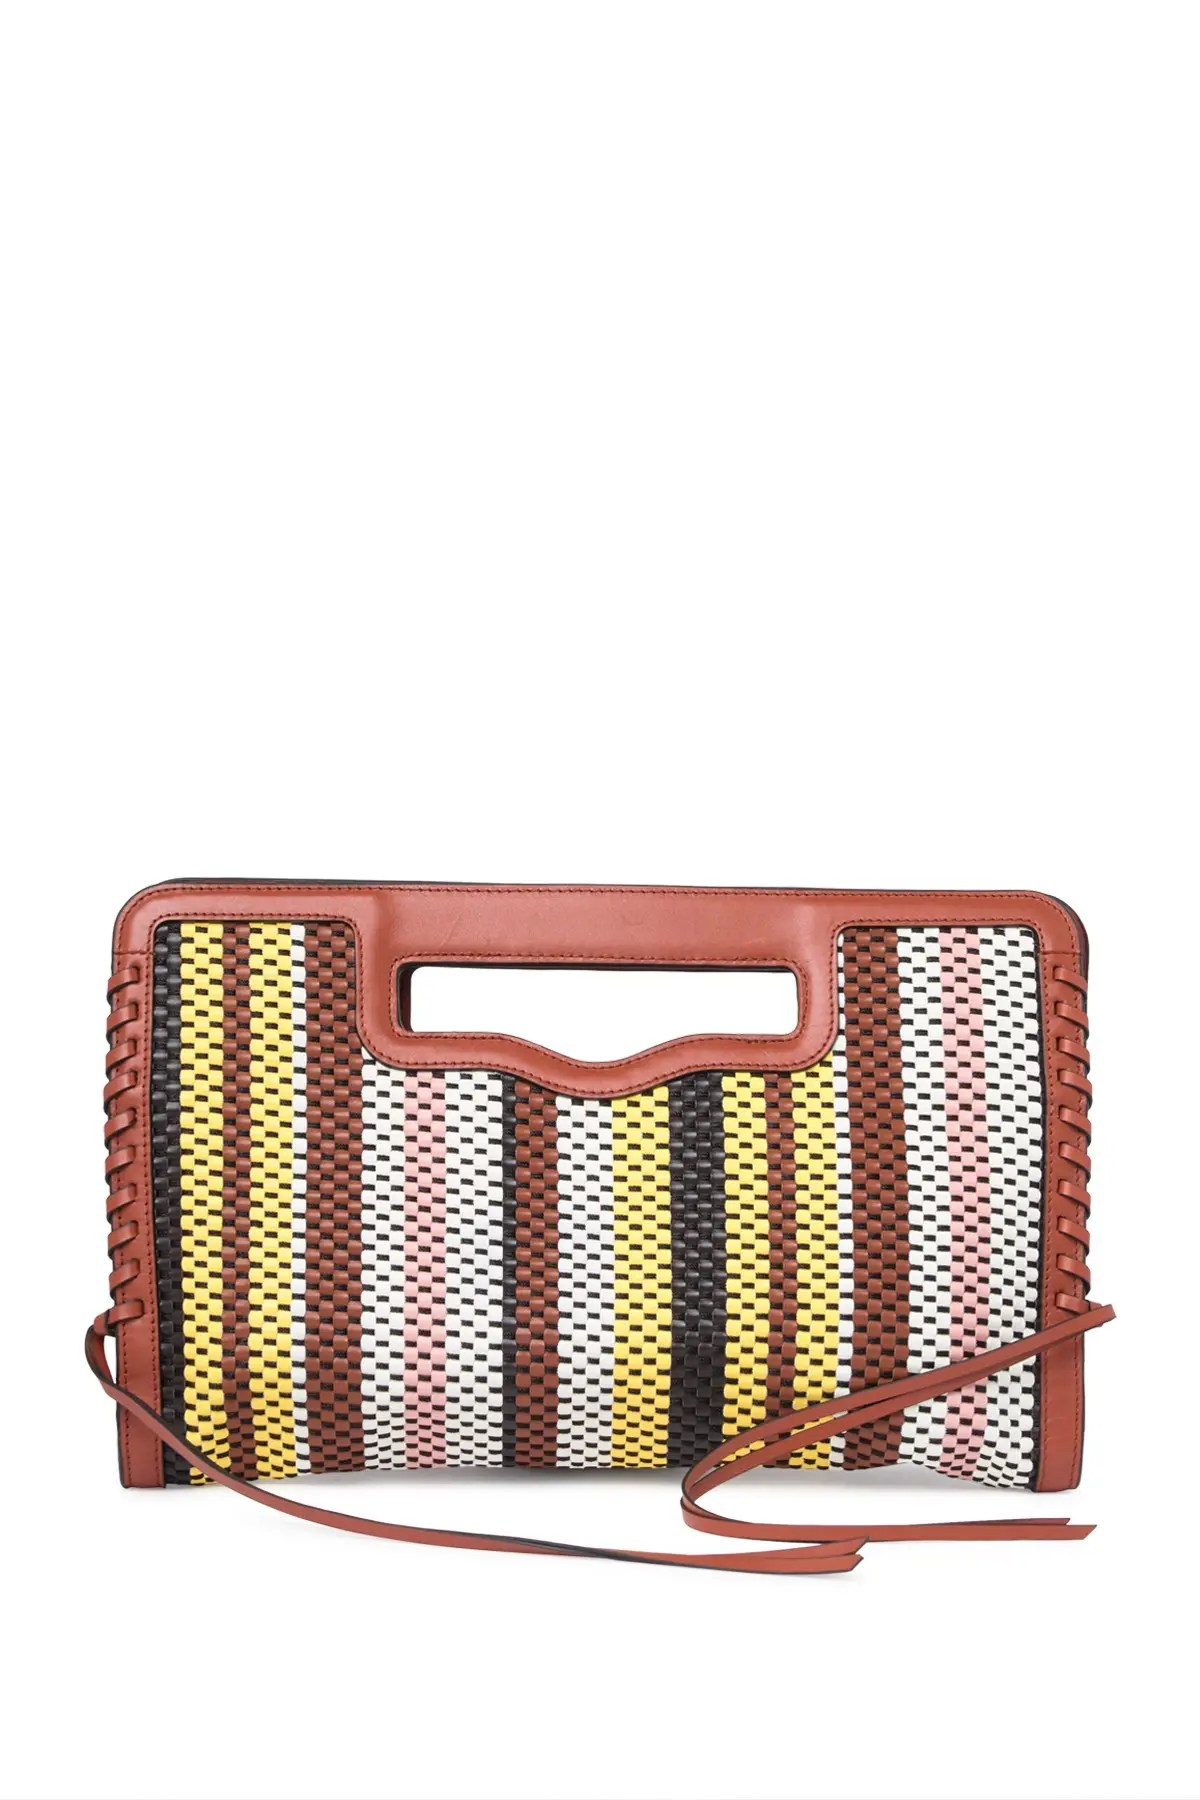 rebecca minkoff handheld striped woven leather clutch nordstrom rack